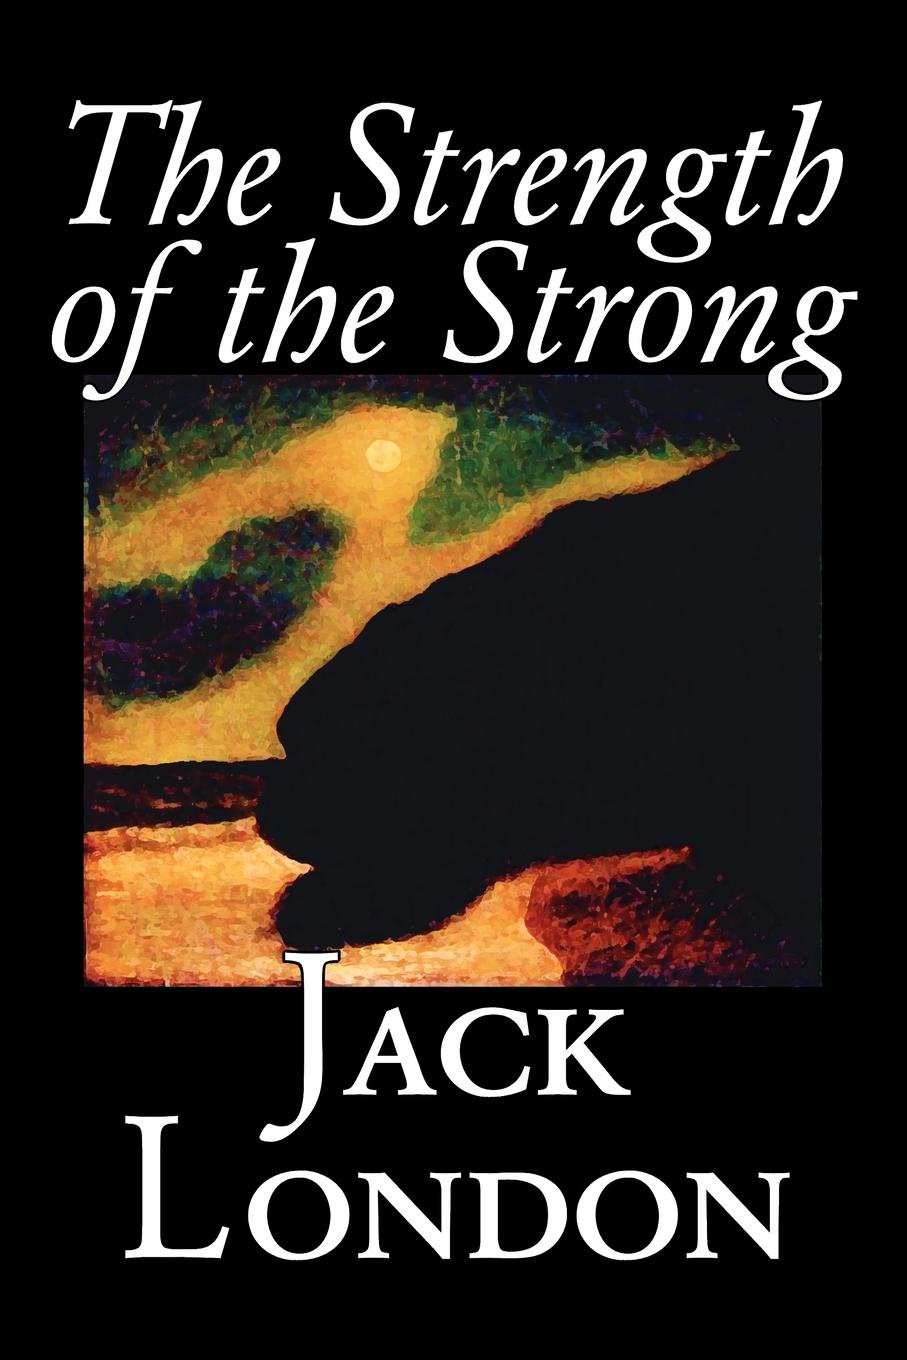 Jack London The Strength of the Strong by Jack London, Fiction, Action & Adventure jack london the strength of the strong